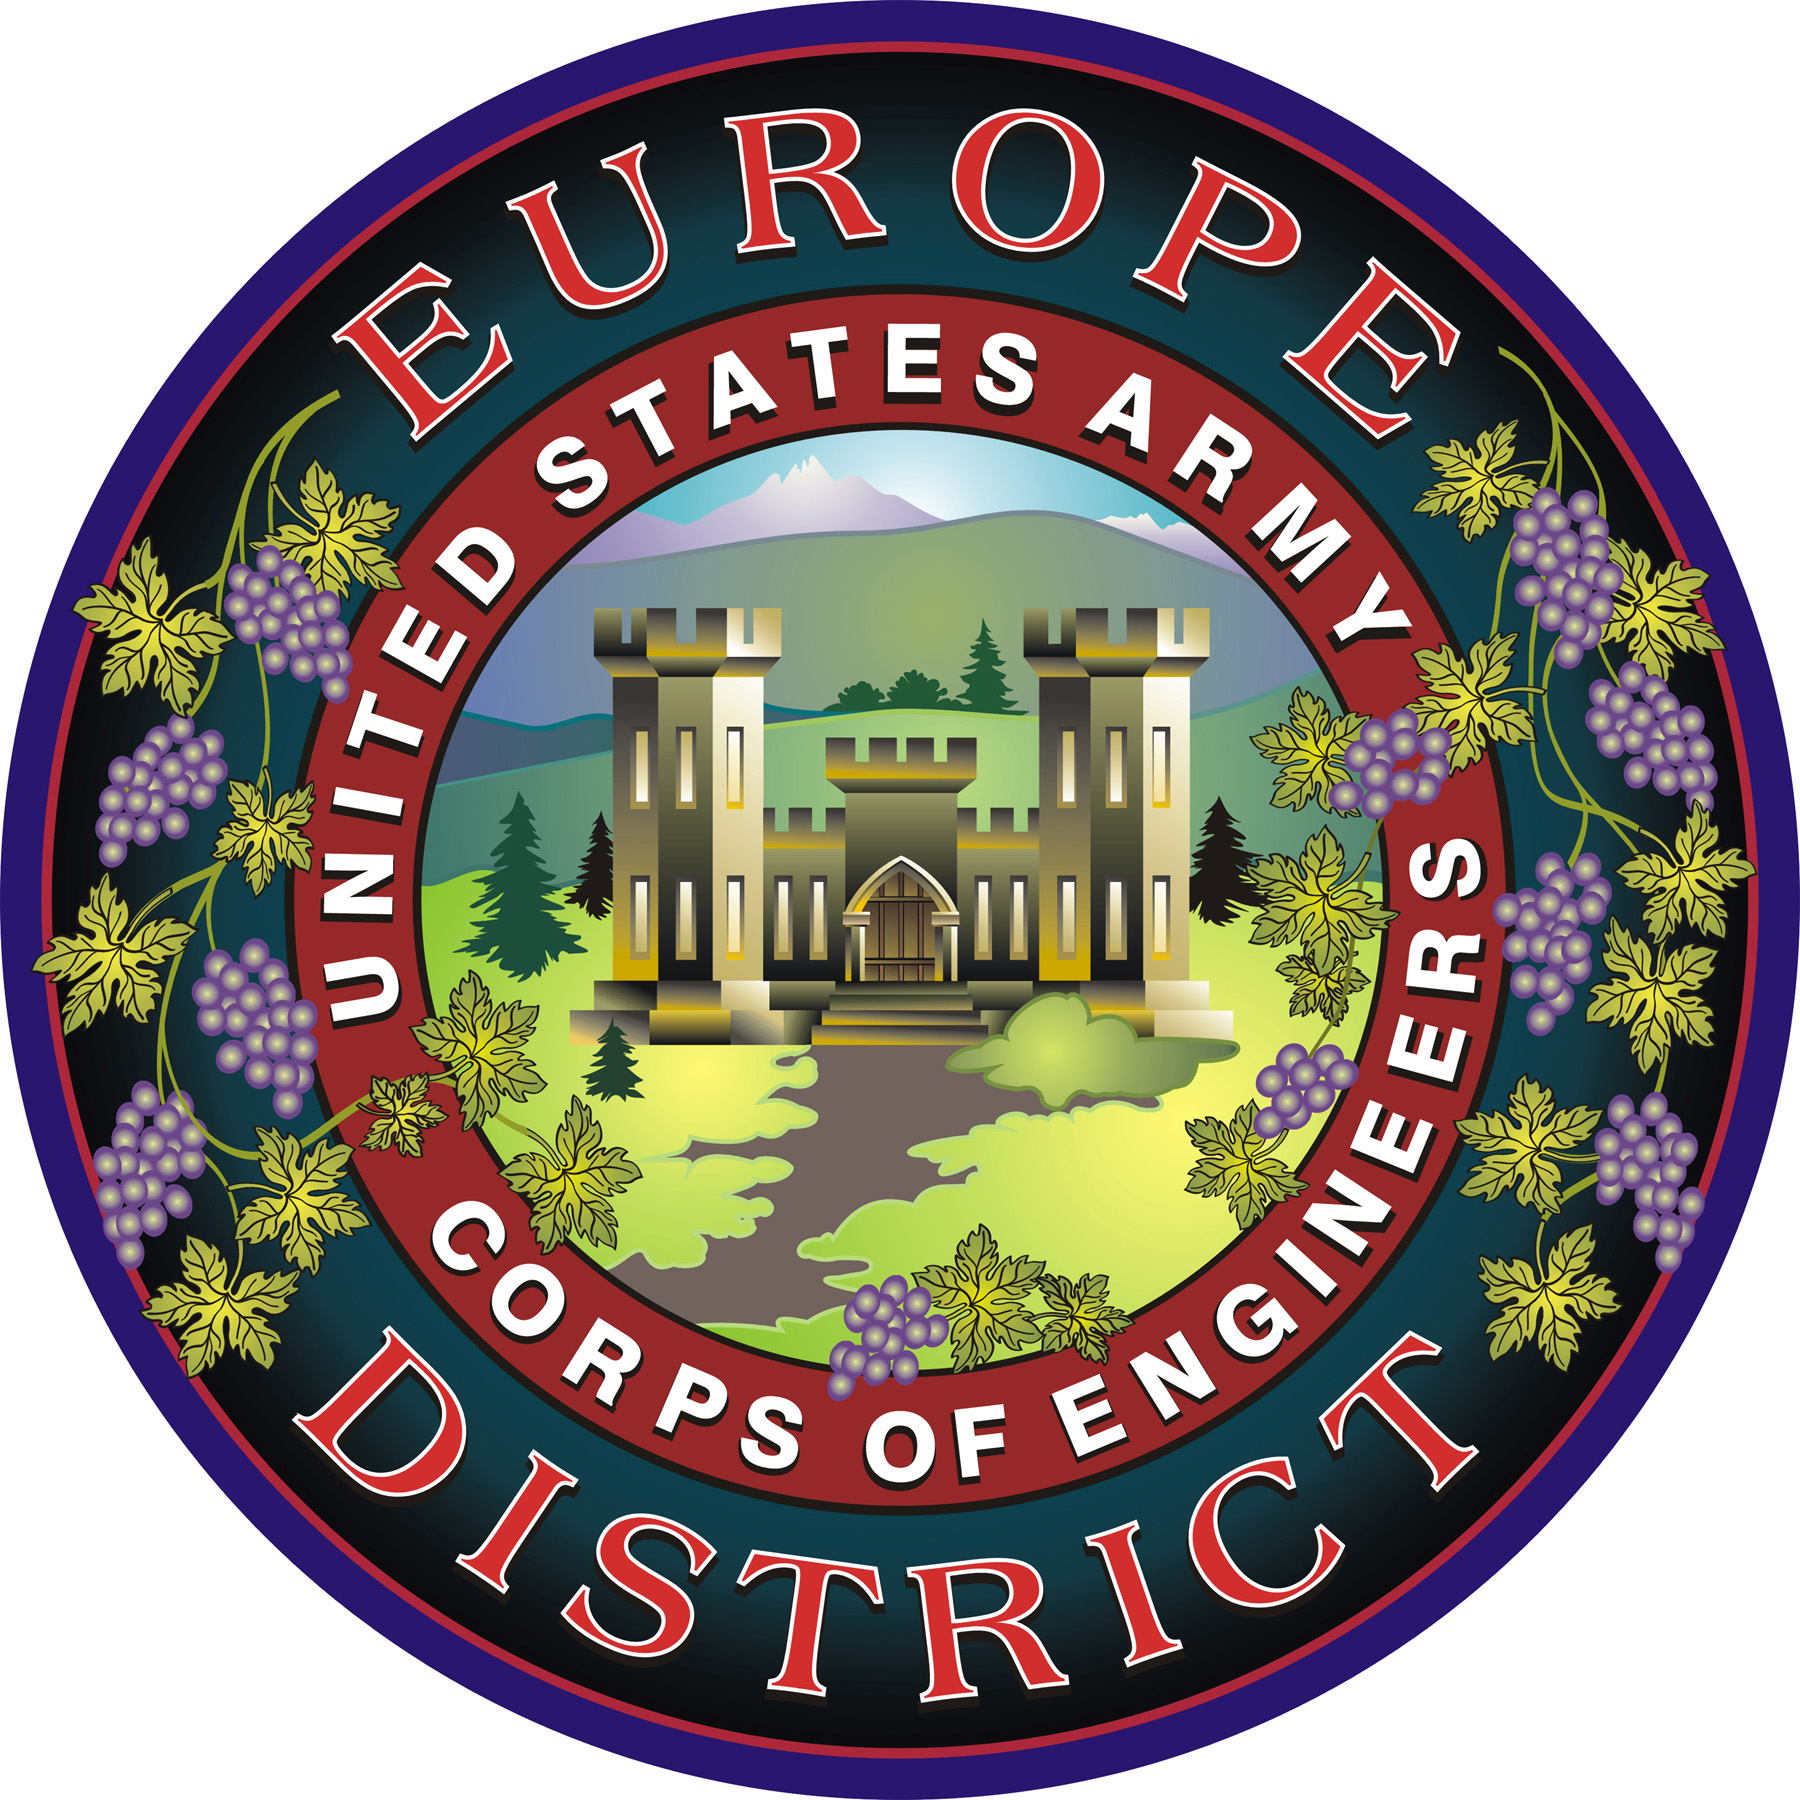 Us Army Corps Of Engineers Europe District Wikipedia - Us-army-corps-of-engineers-district-map